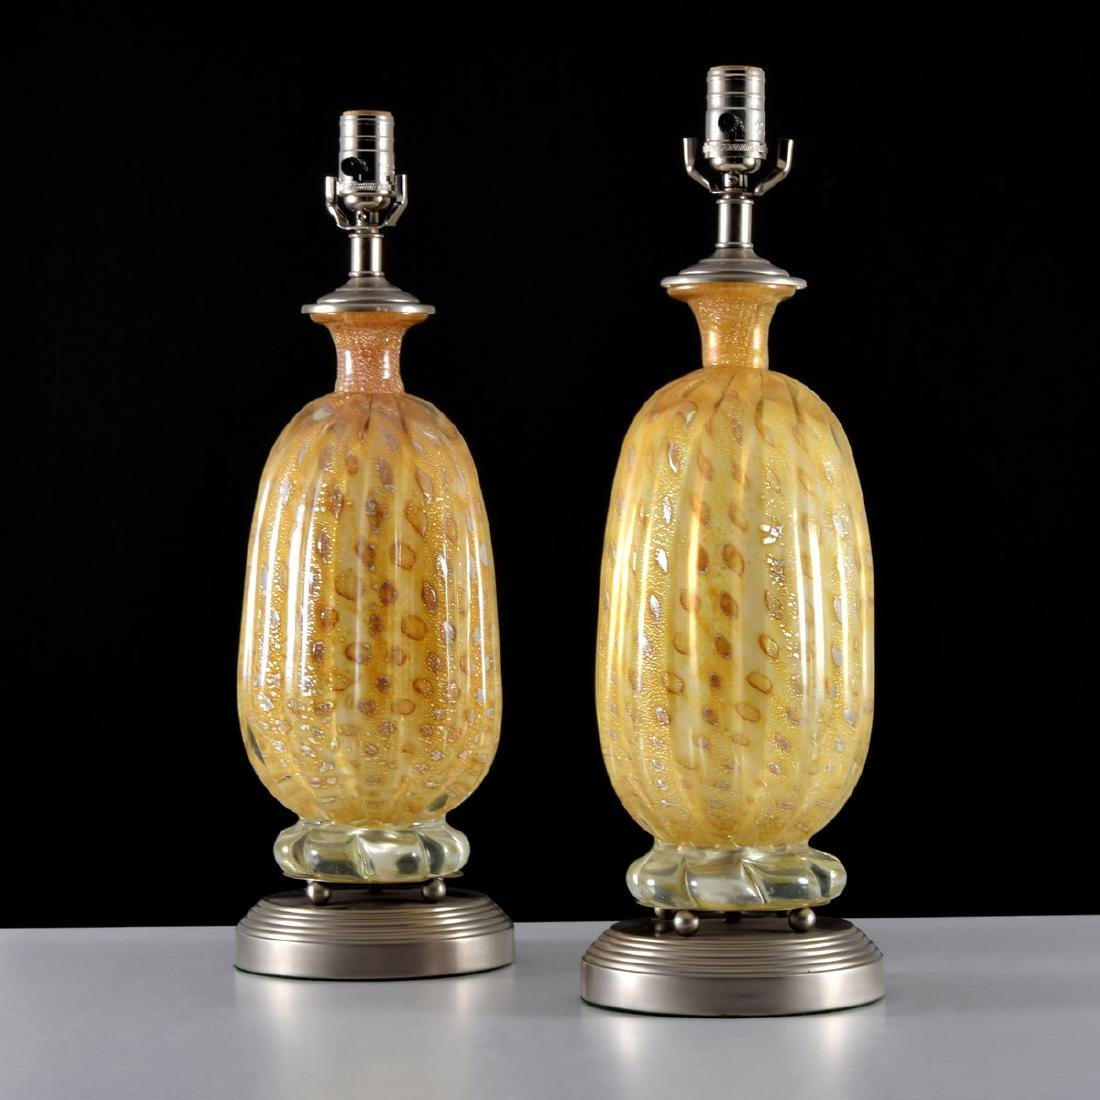 Pair of Murano Lamps, Manner of Barovier & Toso - 9